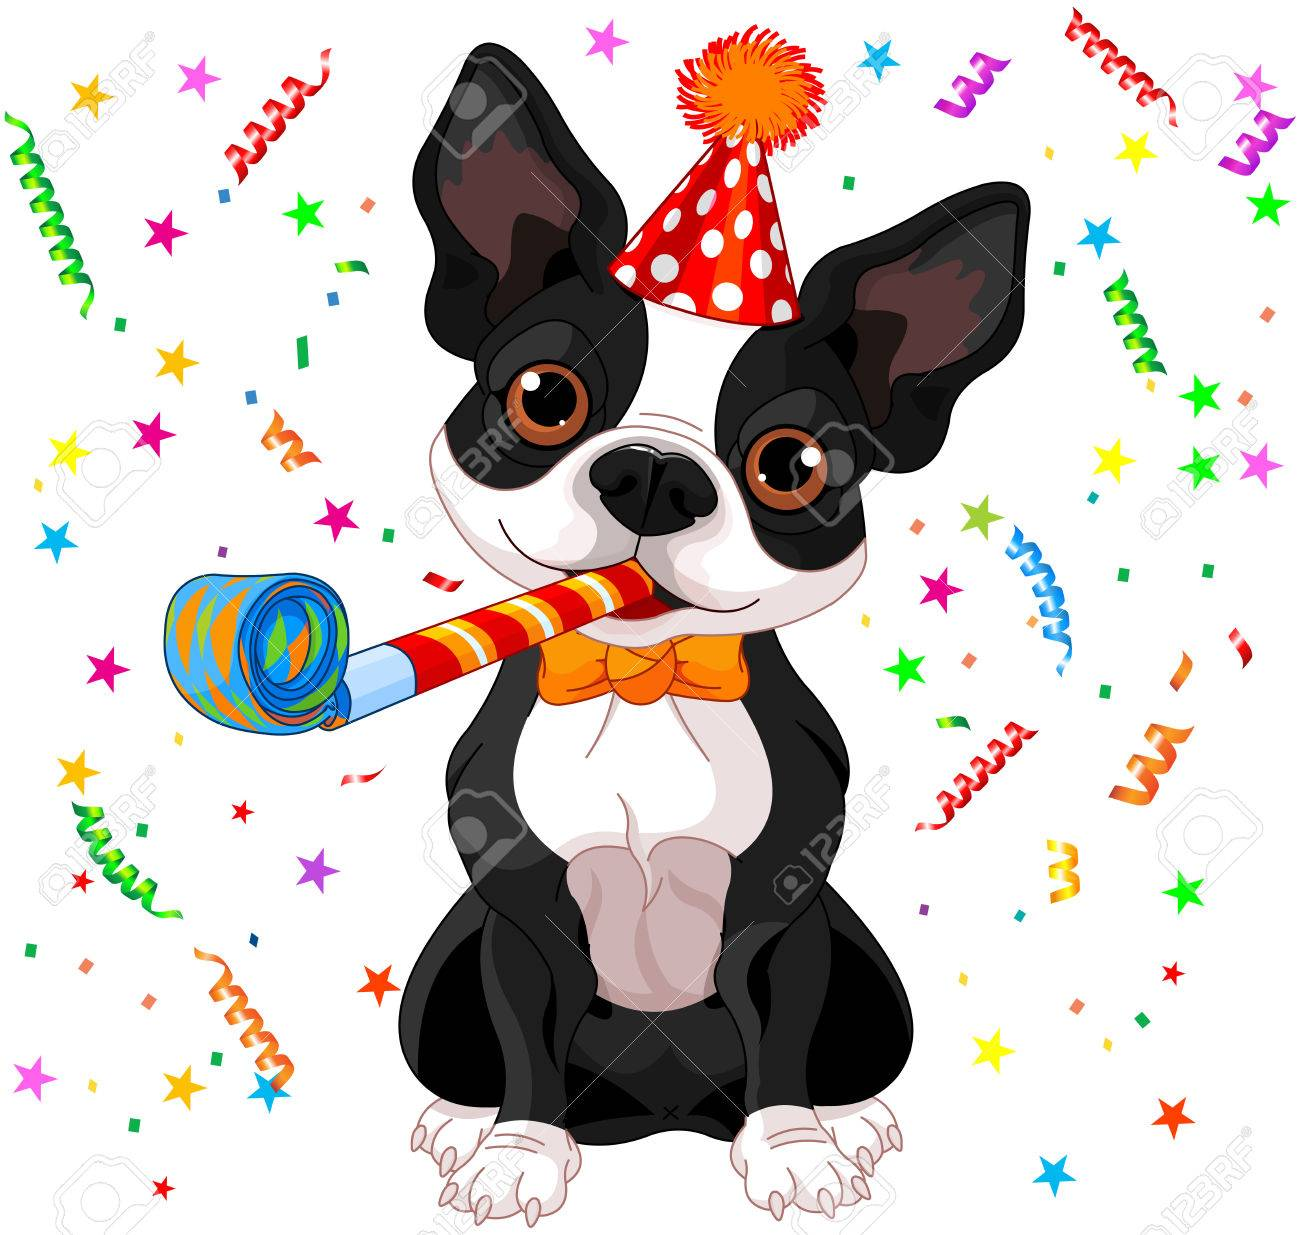 Balade Haute-Marne (52) - Côte d'or (21) - Aube (10) 35588778-illustration-of-cute-boston-terrier-celebrating